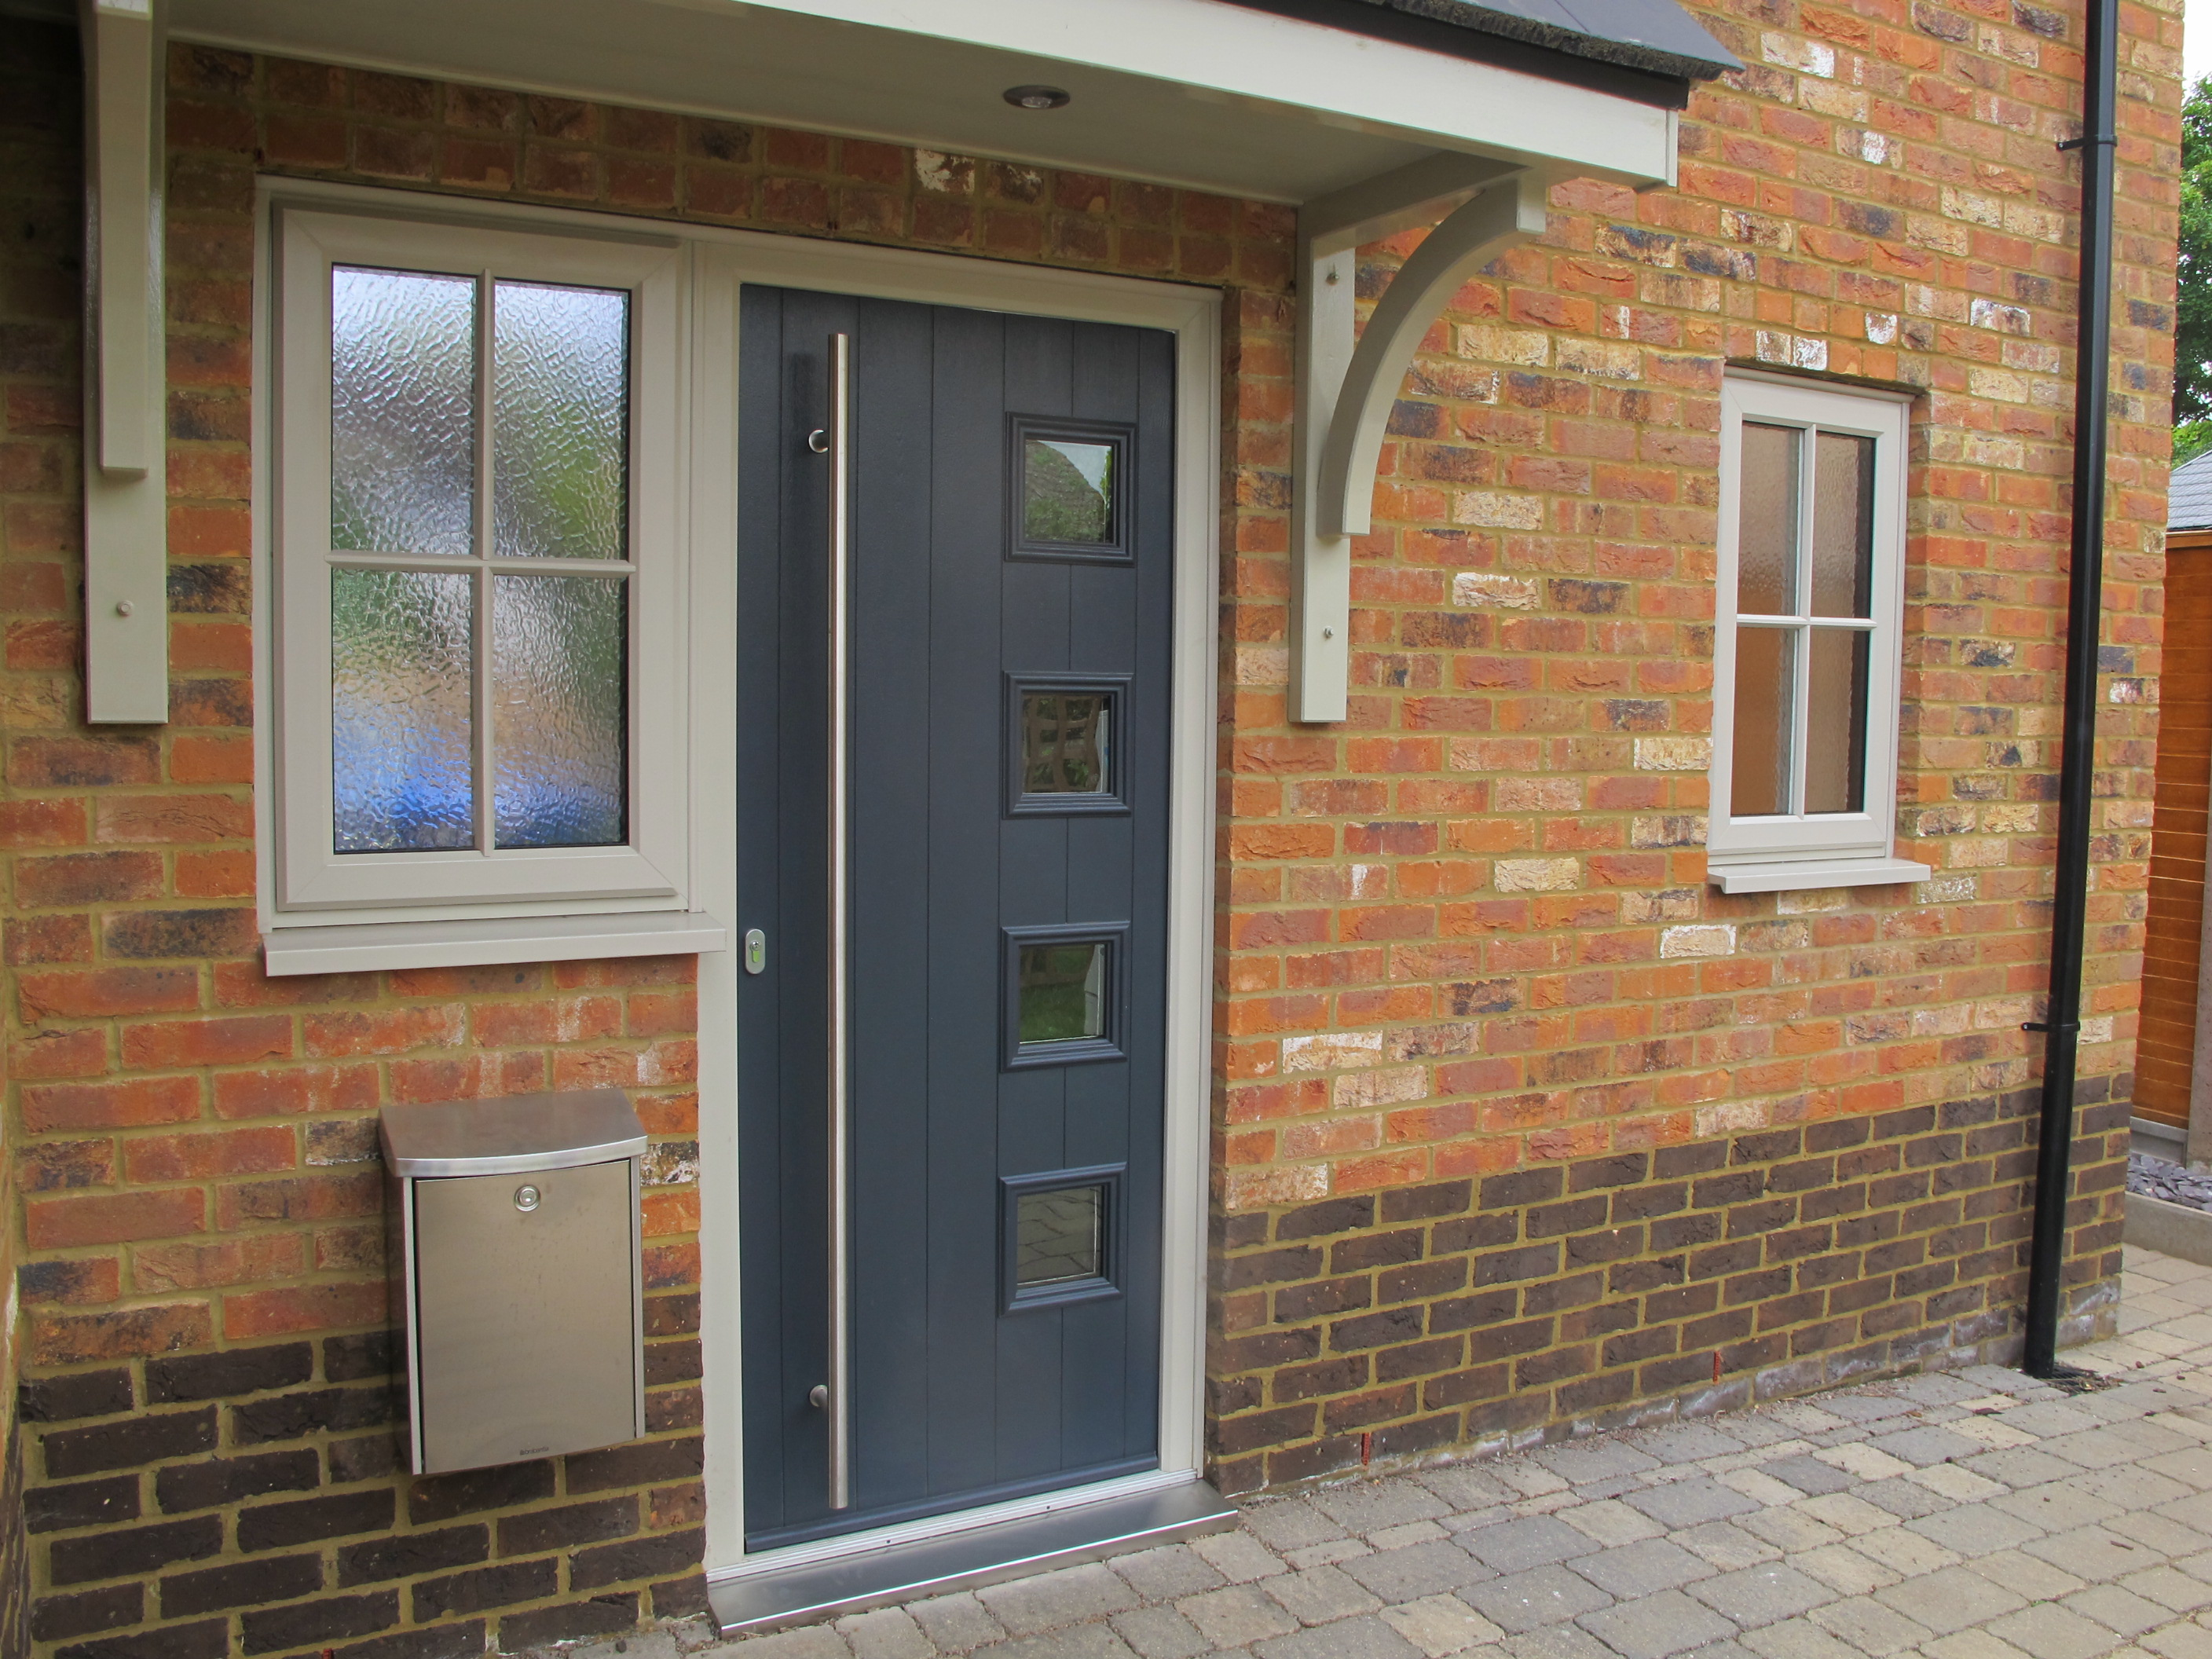 Contemporary composite doors apex windows and contractors ltd contemporary composite doors home contemporary composite doors rubansaba